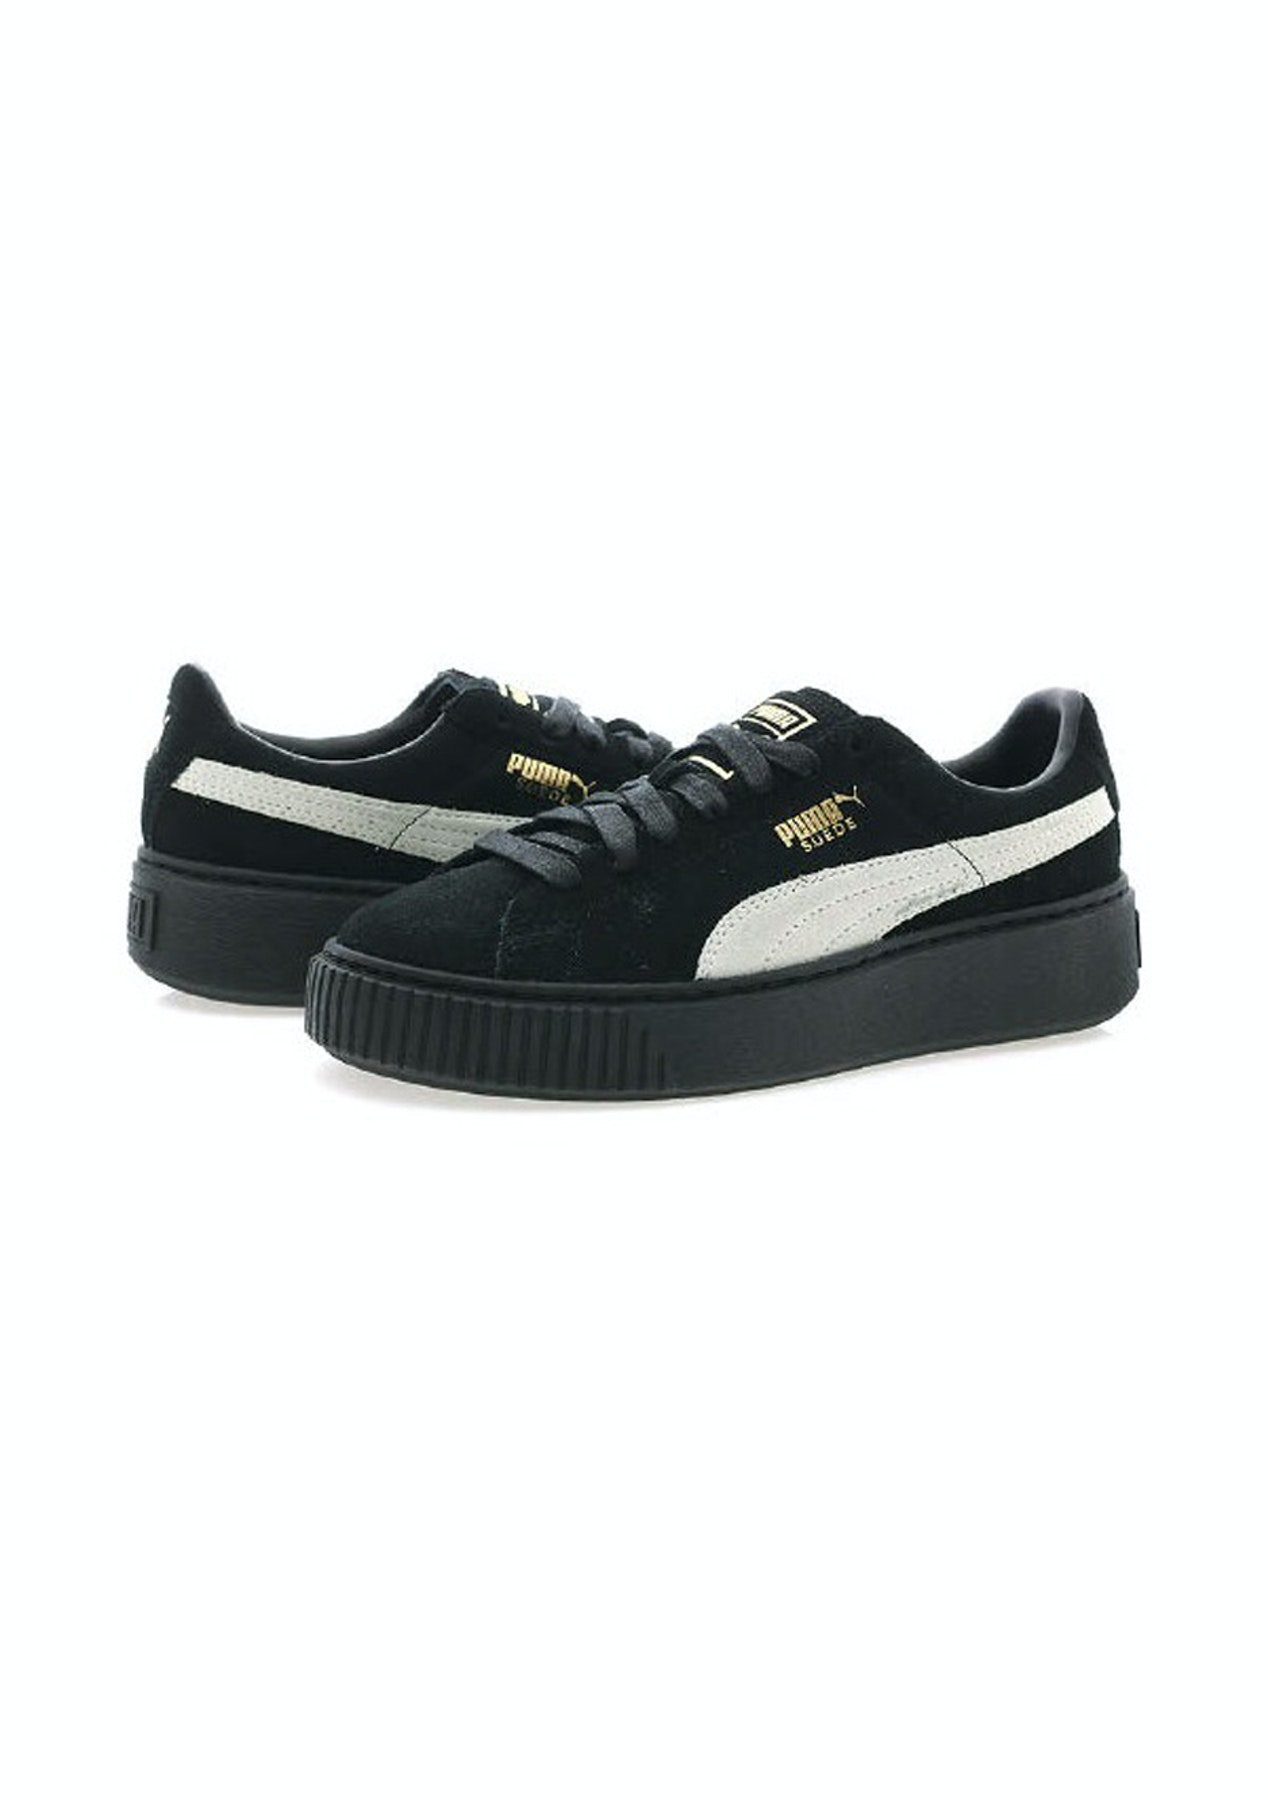 299a694c81d3 Puma Womens - Suede Platform Fl - Black White Gold - The Big Shoe Sale -  Onceit